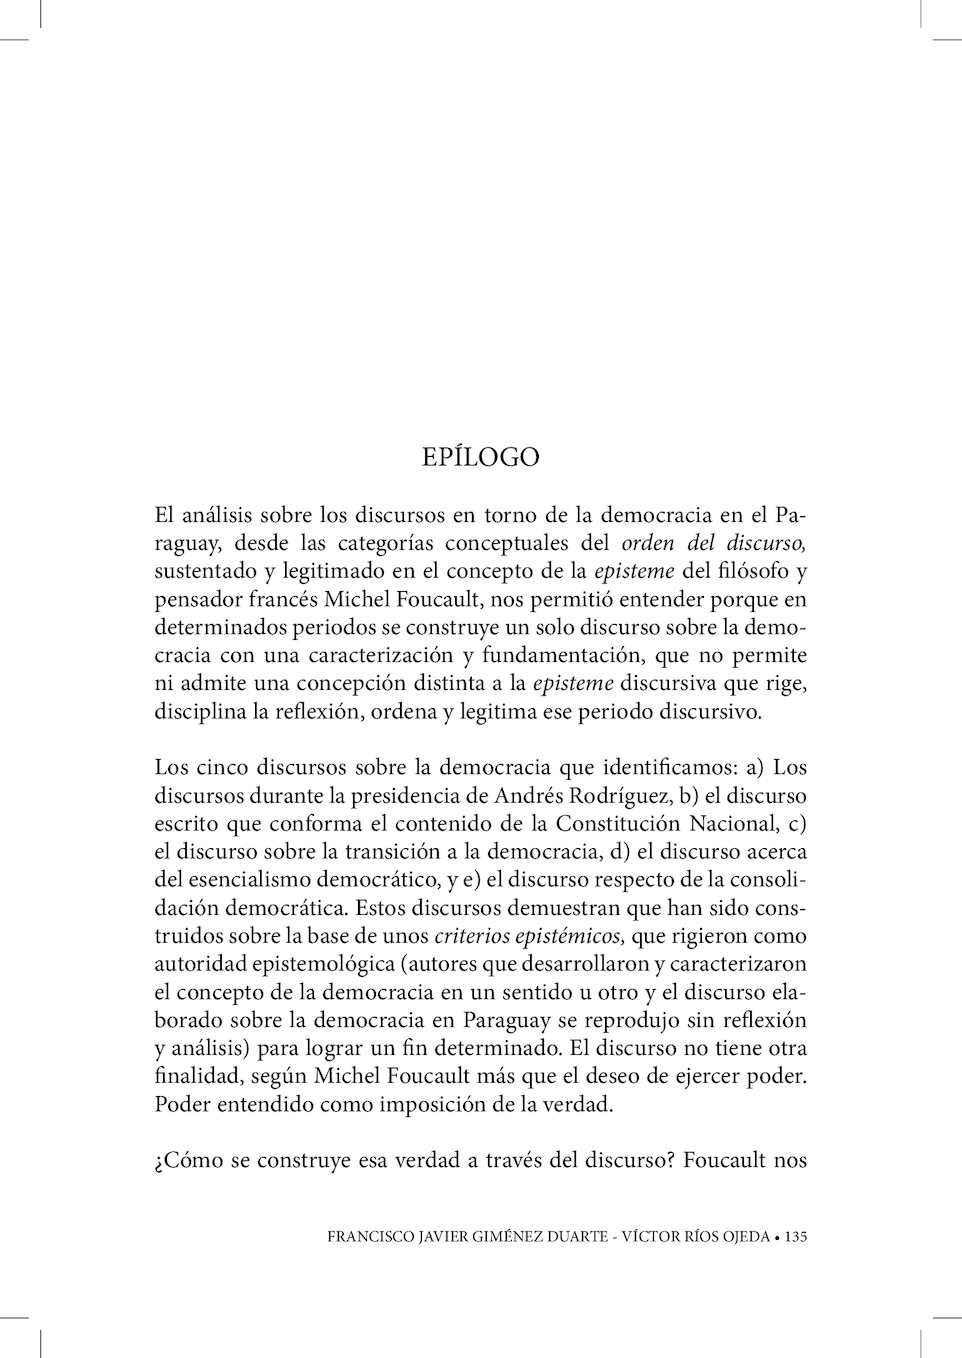 Page 136